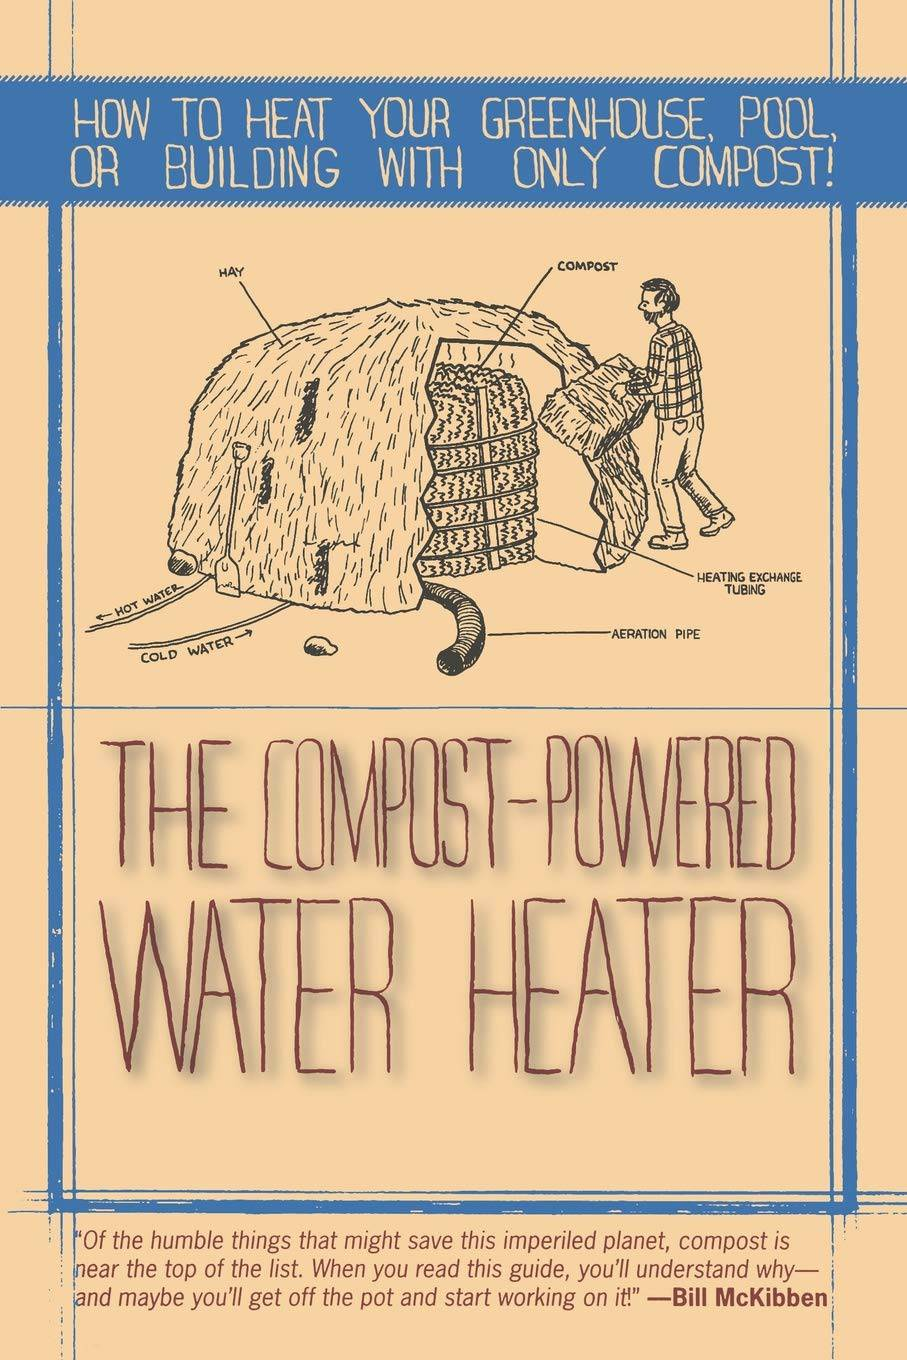 The compost powered water heater by Bill McKibben